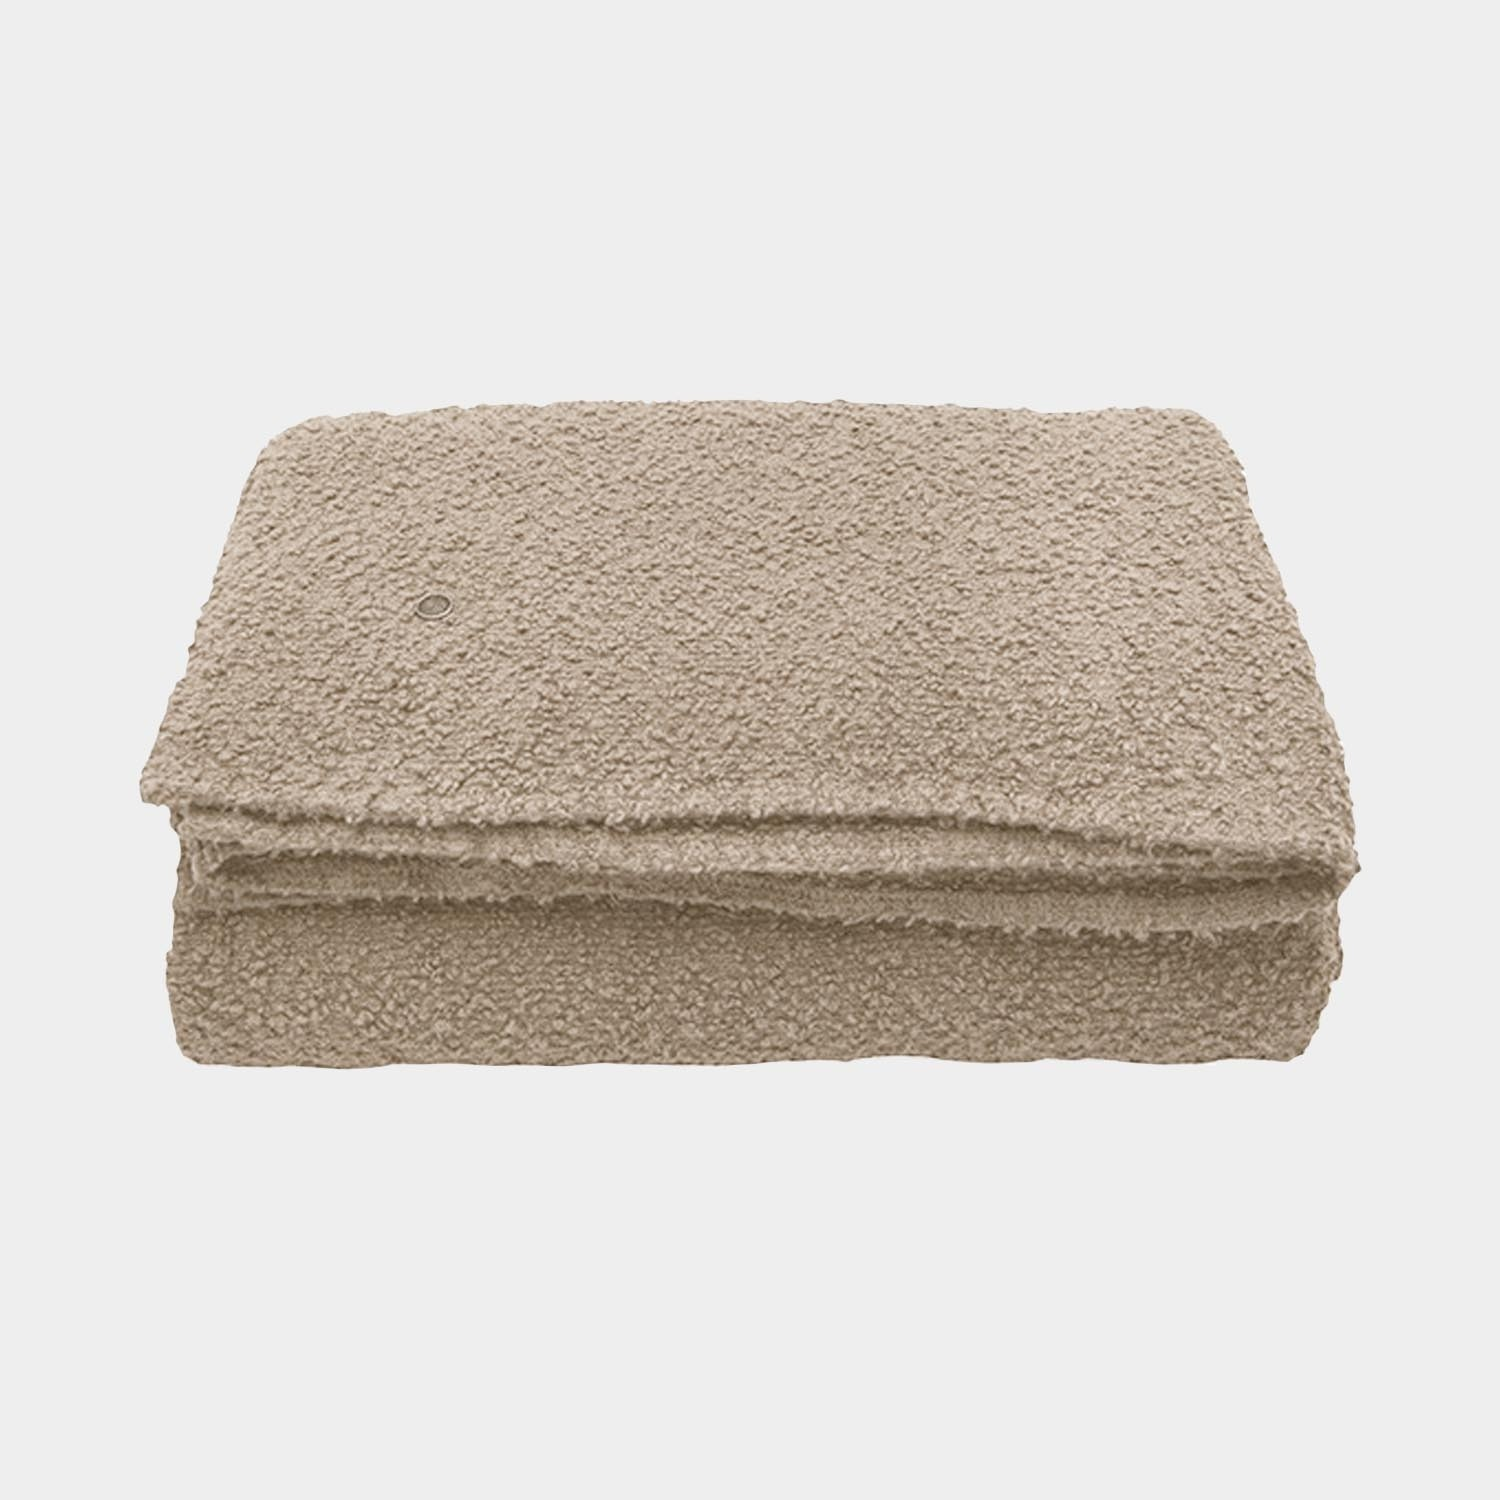 Bouclette Linen Throw, Portobello Beige